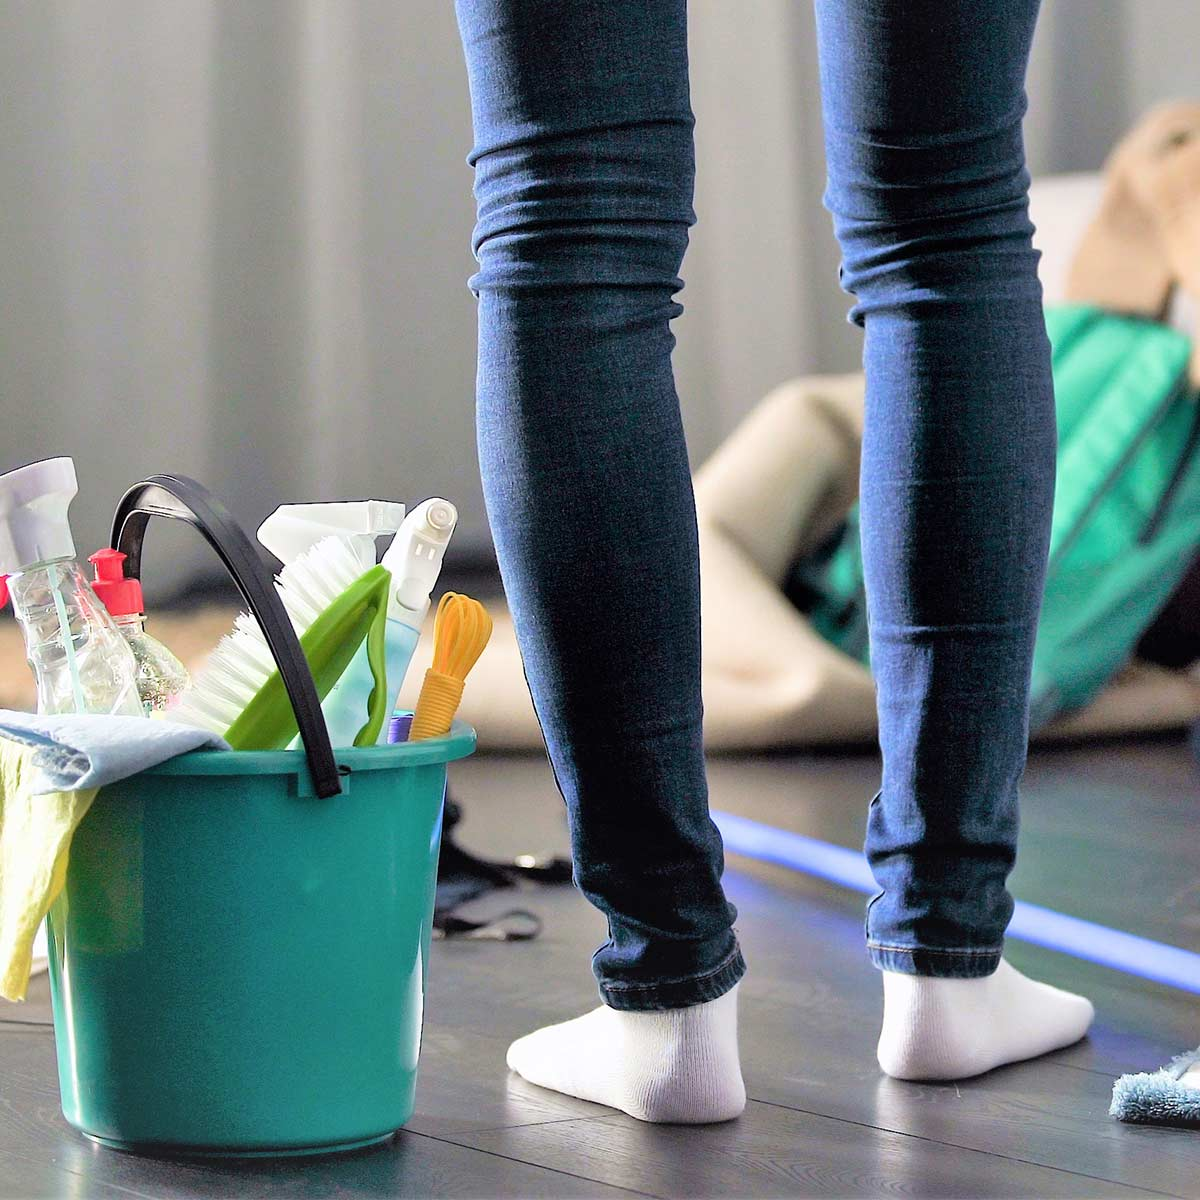 Woman in jeans and white socks standing in cluttered room next to cleaning supplies on wood floor.